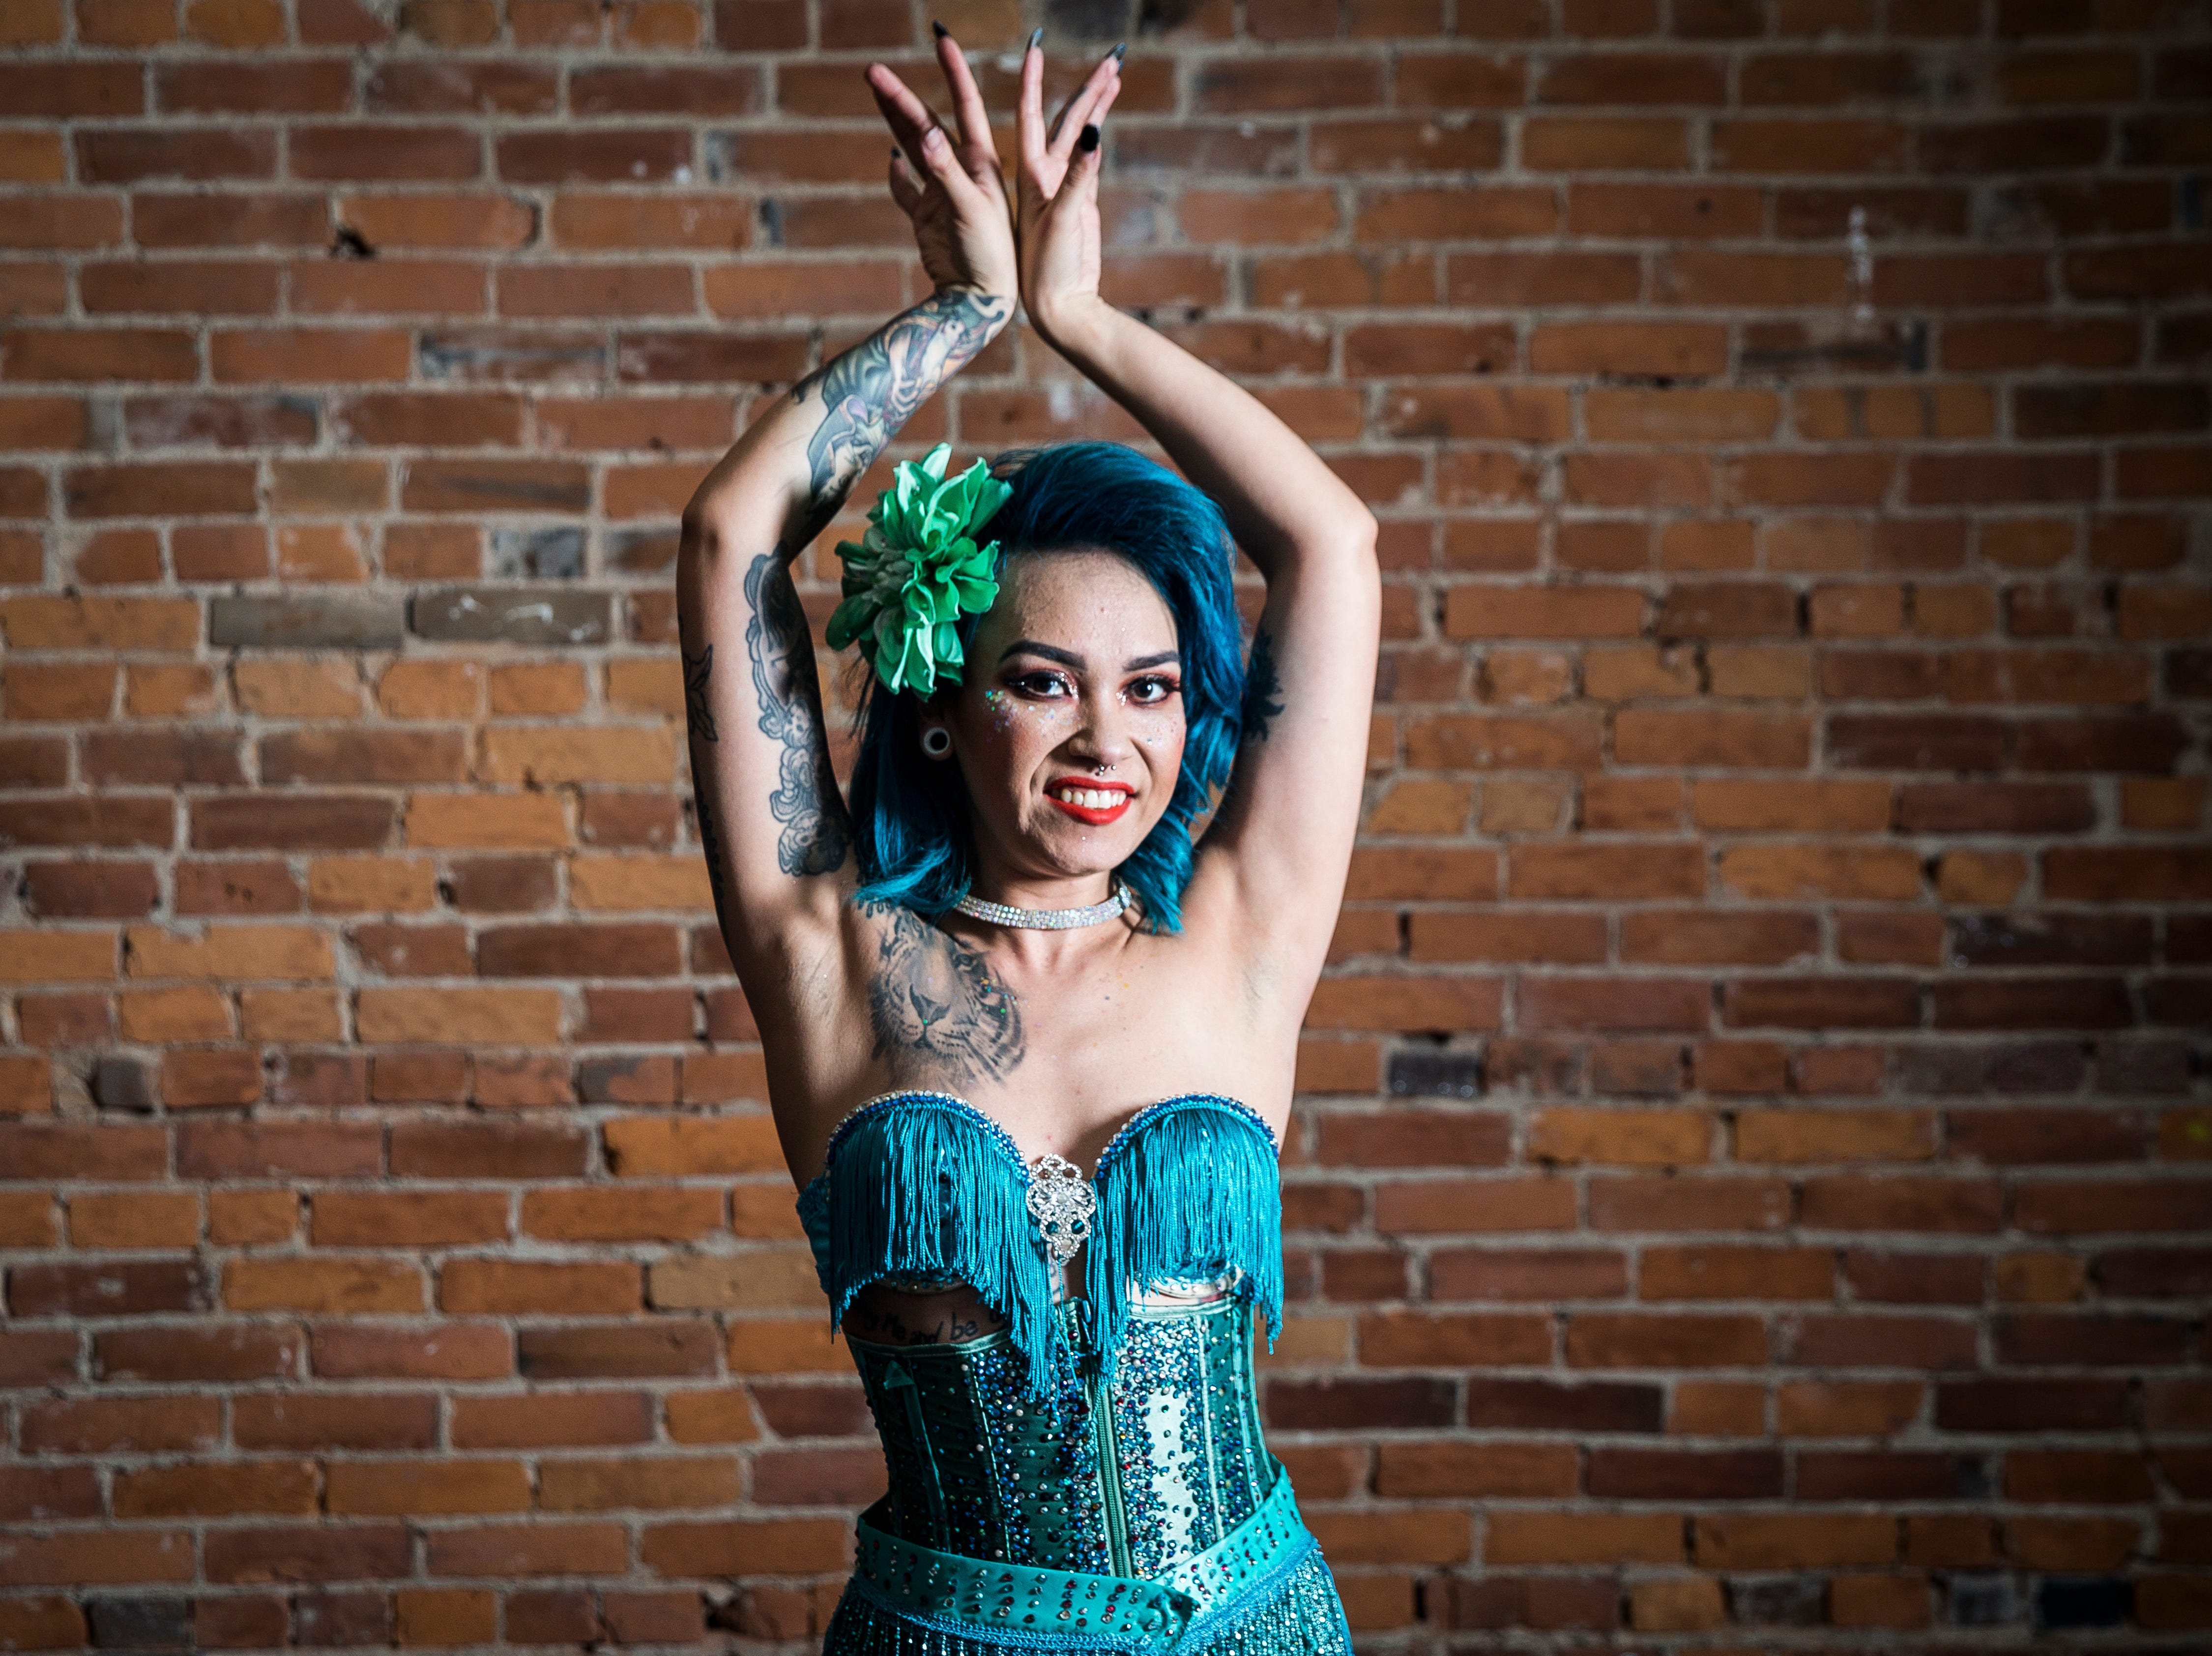 Fabulous Funcie Femmes performer Greta Glee in and out of character.